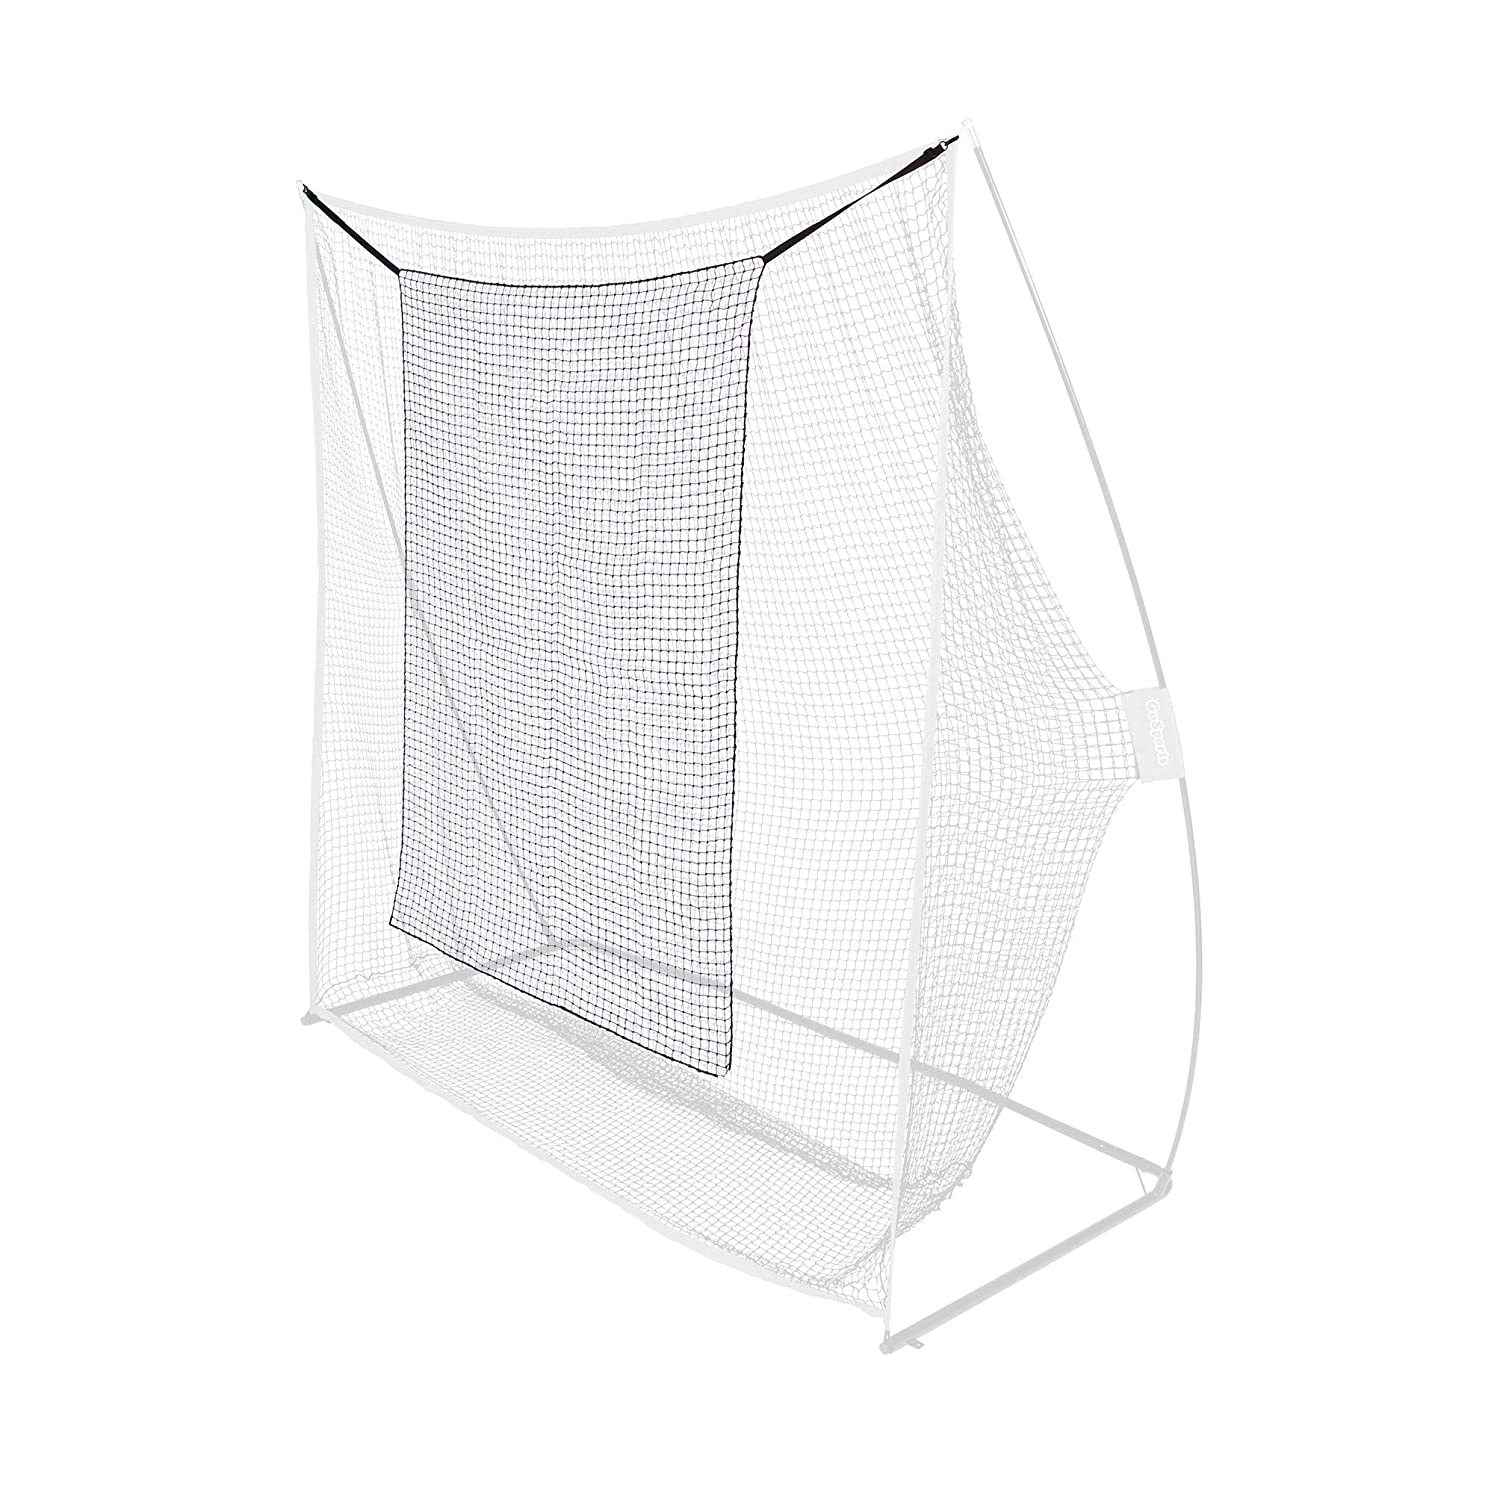 GoSports Golf Practice Hitting Net | Choose Between Huge 10' x 7' or 7' x 7' Nets | Personal Driving Range for Indoor or Outdoor Use | Designed by Golfers for Golfers whwffxxvi5498284